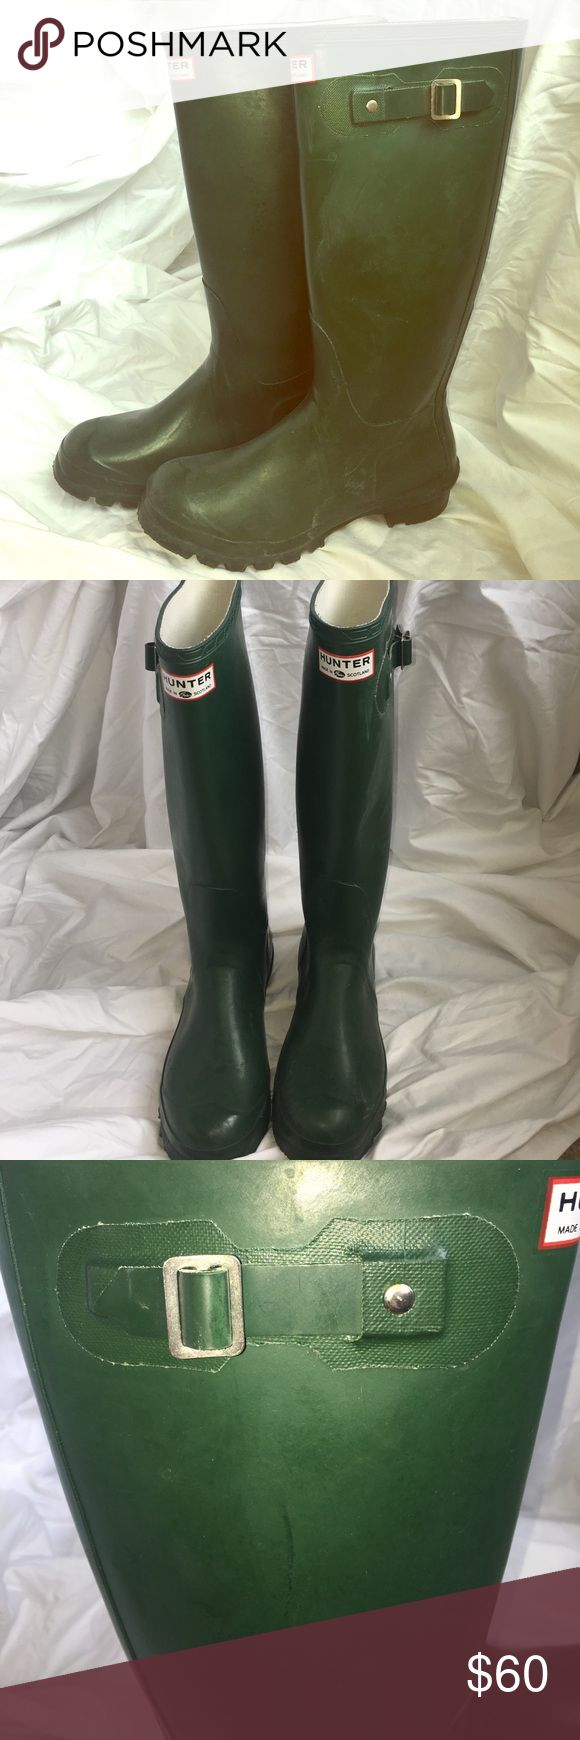 Hunter Tall Rain Boots Matte Green tall Hunter rain boots. They have visible signs of wear, but are still in great condition and can make any outfit stylish on a rainy day!! Hunter Boots Shoes Winter & Rain Boots